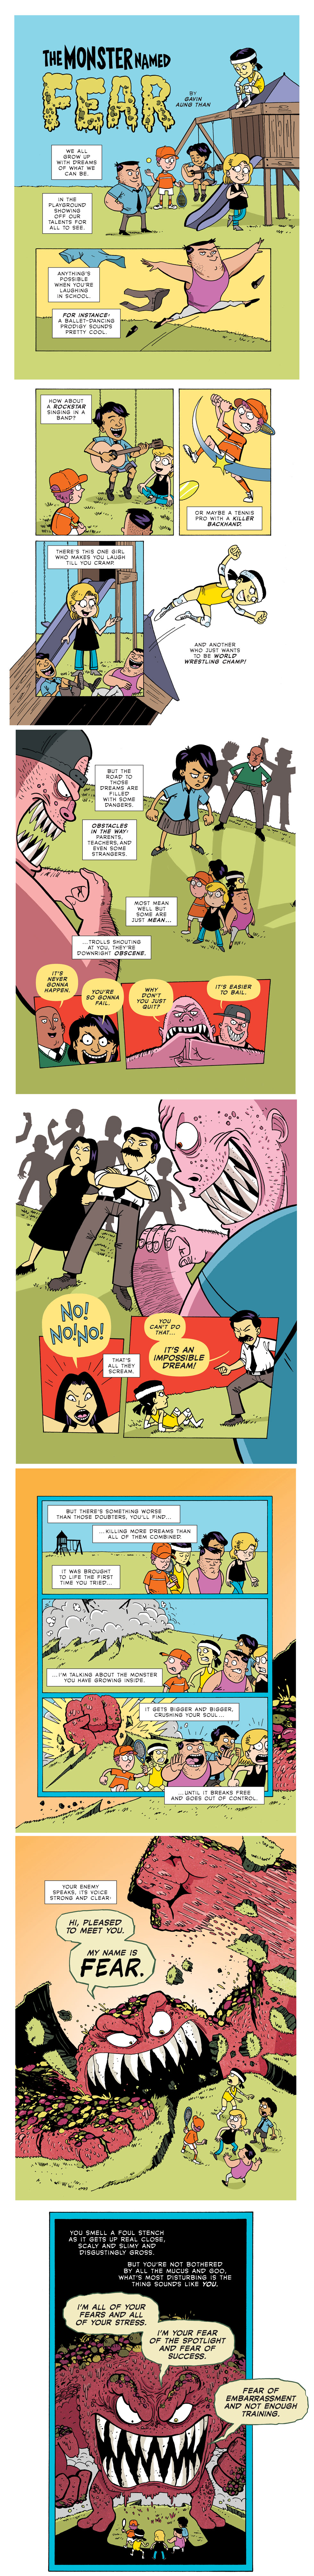 [Image] The Monster Named Fear (by ZenPencils)